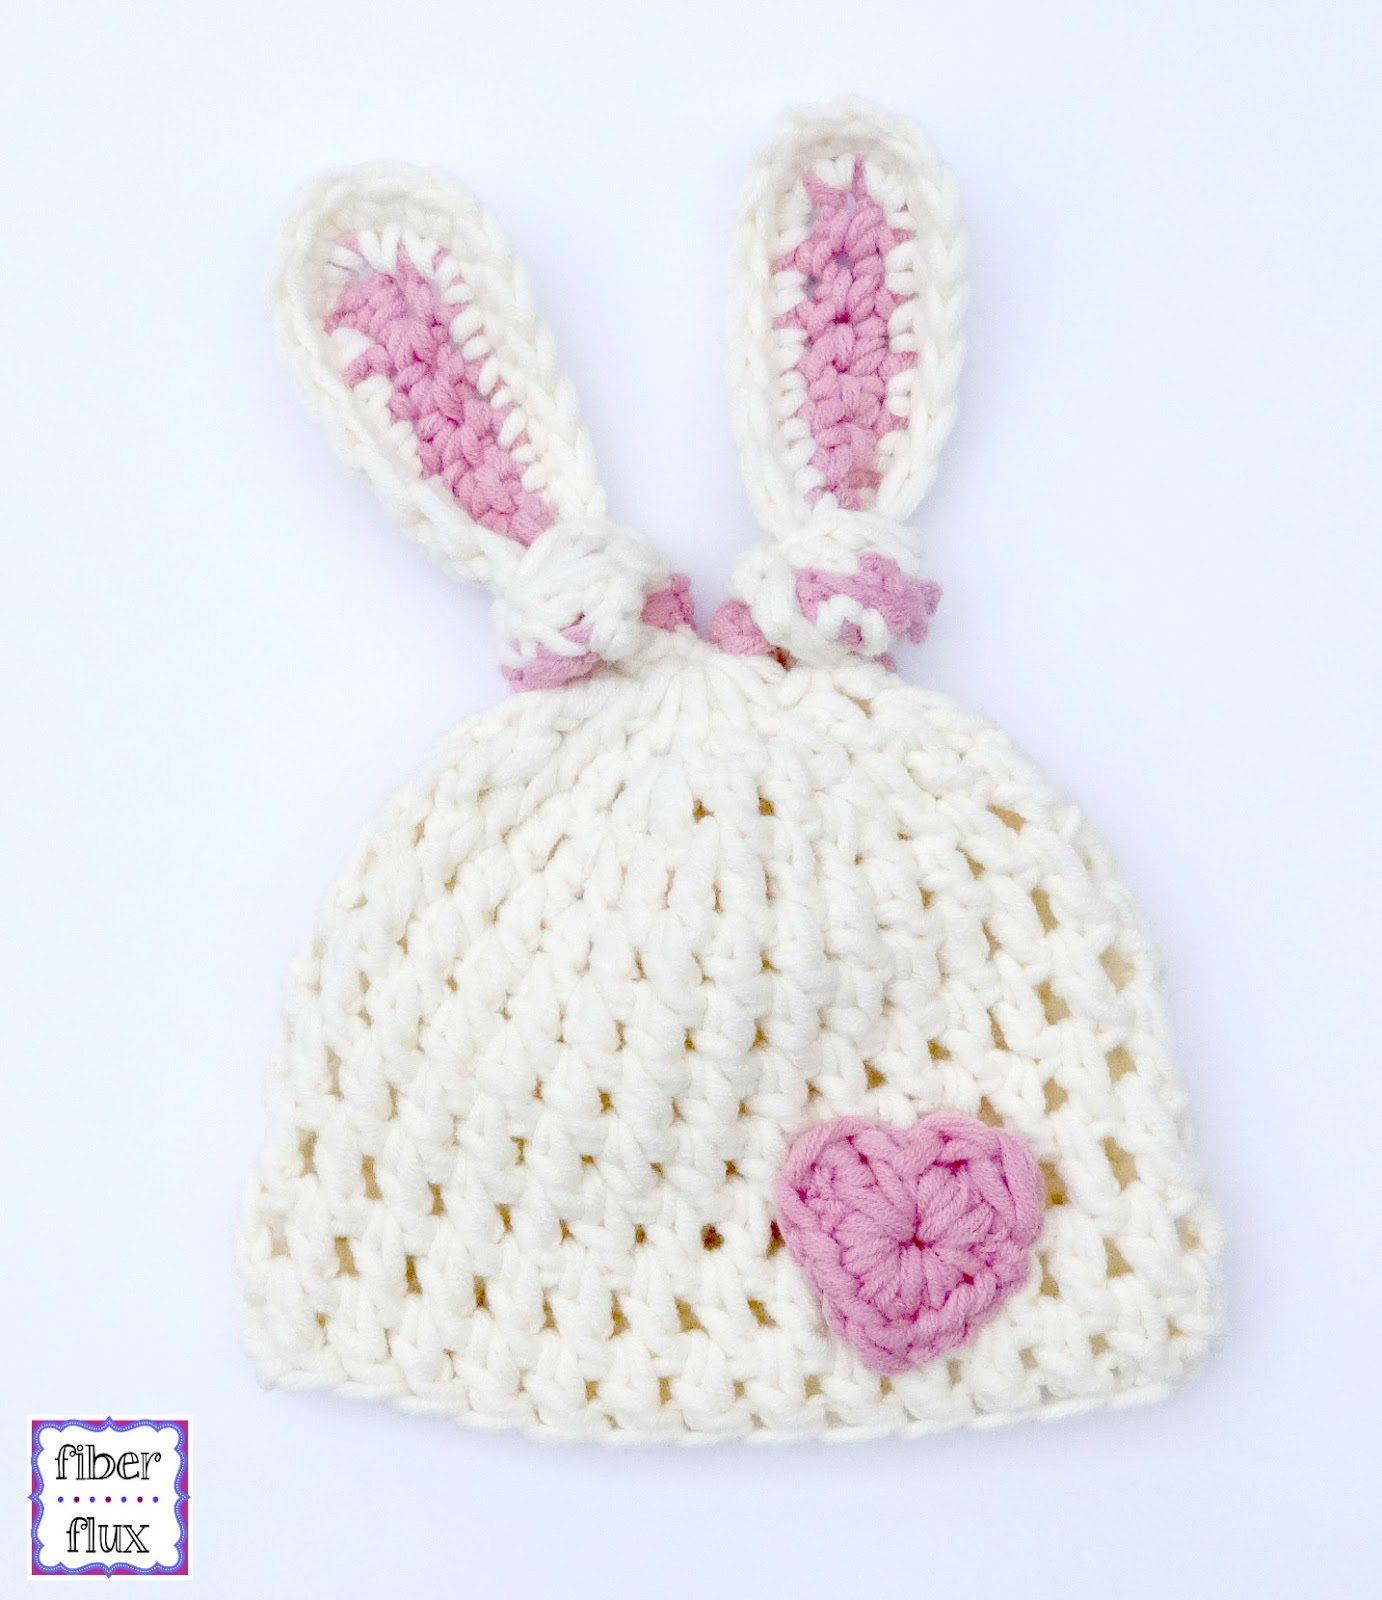 Crochet Pattern For Newborn Bunny Hat : Fiber Flux: Free Crochet Pattern...Newborn Bunny Knot Hat!